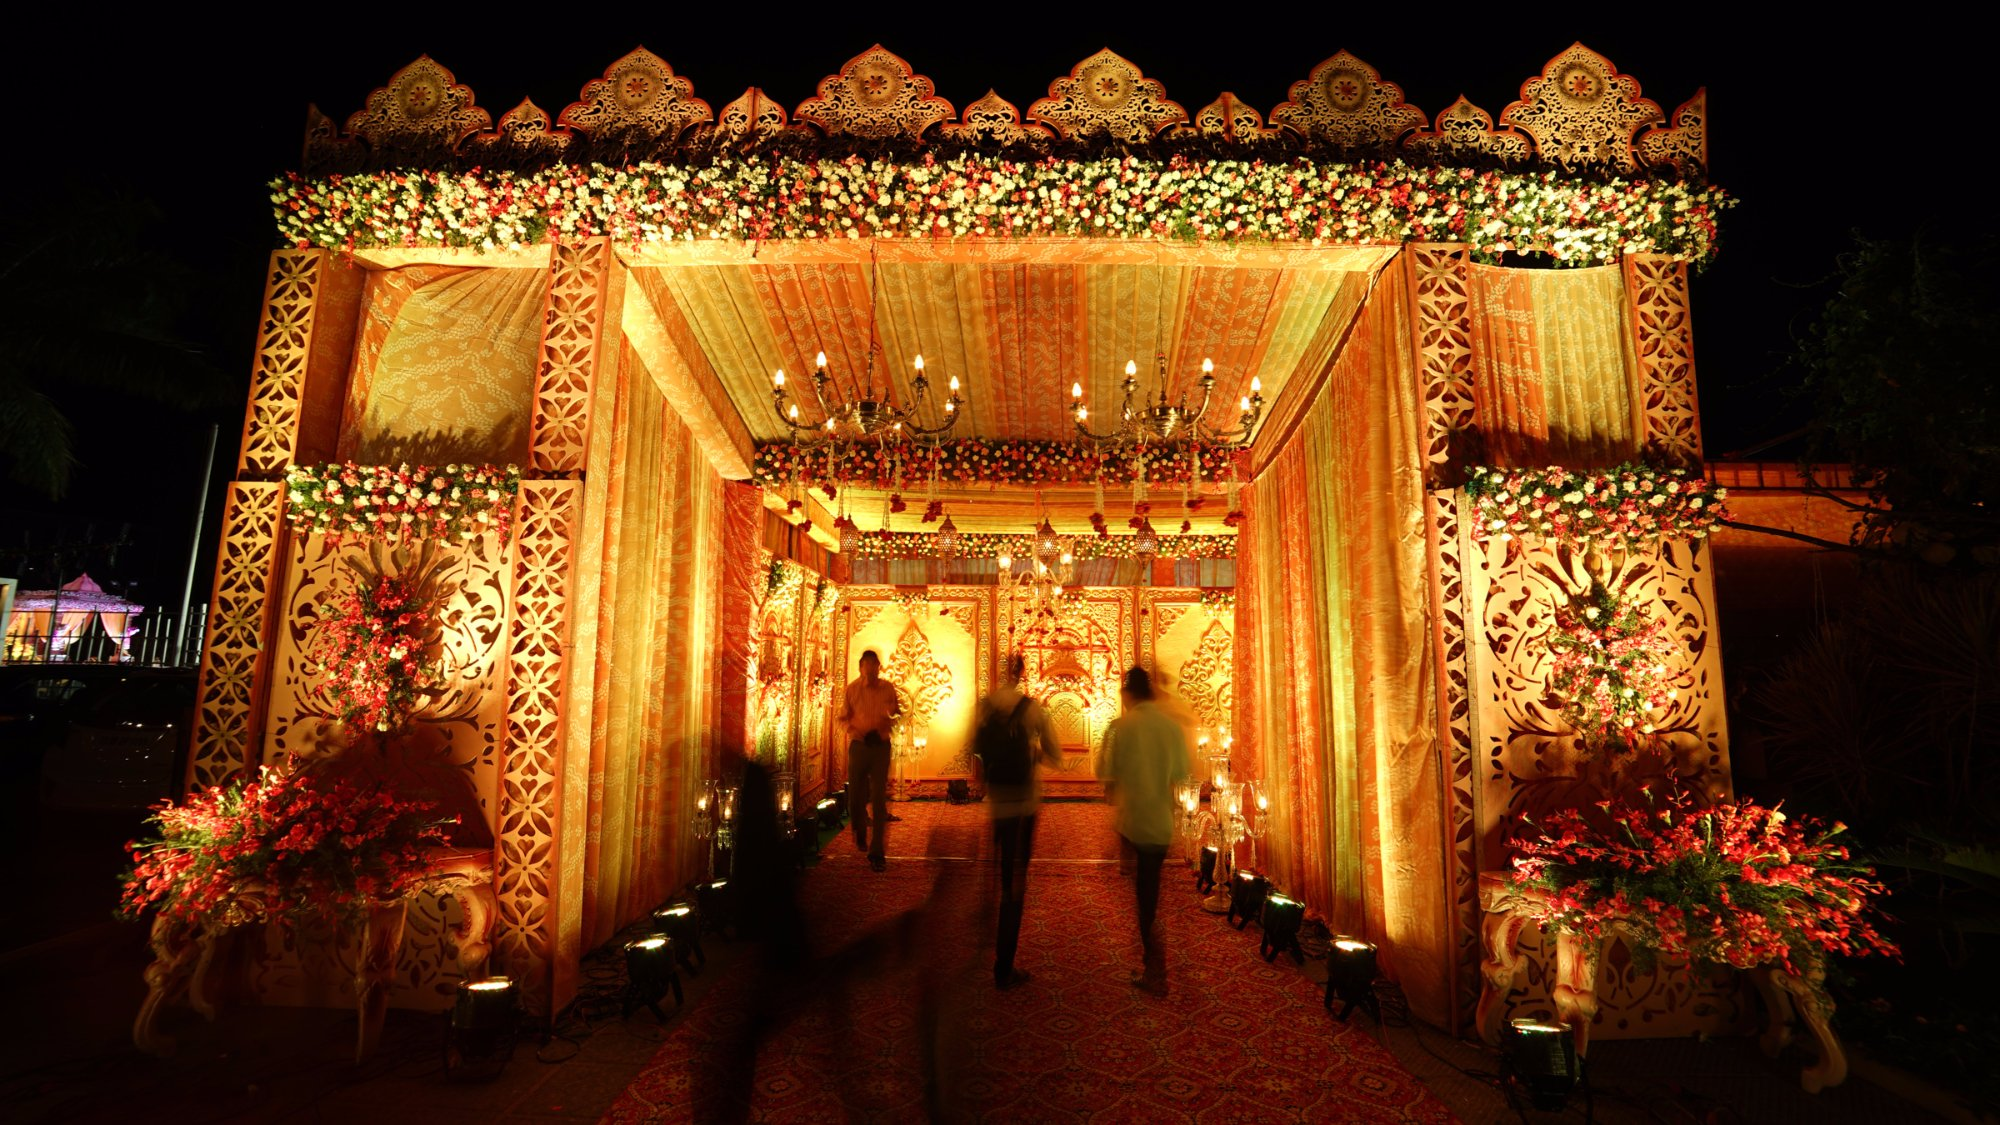 comparison of wedding of india and The end-of-life and death in india though the total population of followers of jainism in the world is small by comparison to the world's major religions, the majority of these followers - up to 42 million - in india.